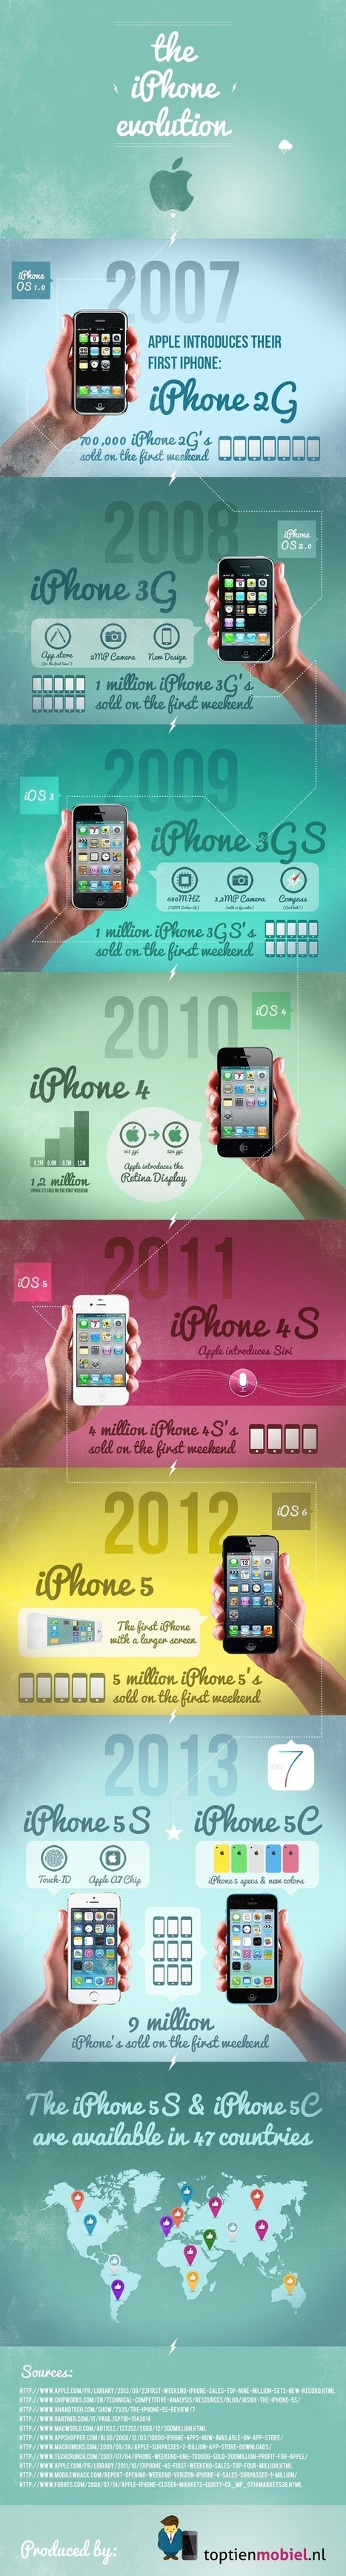 #Infographic: The evolution of the iPhone | Technology | Scoop.it